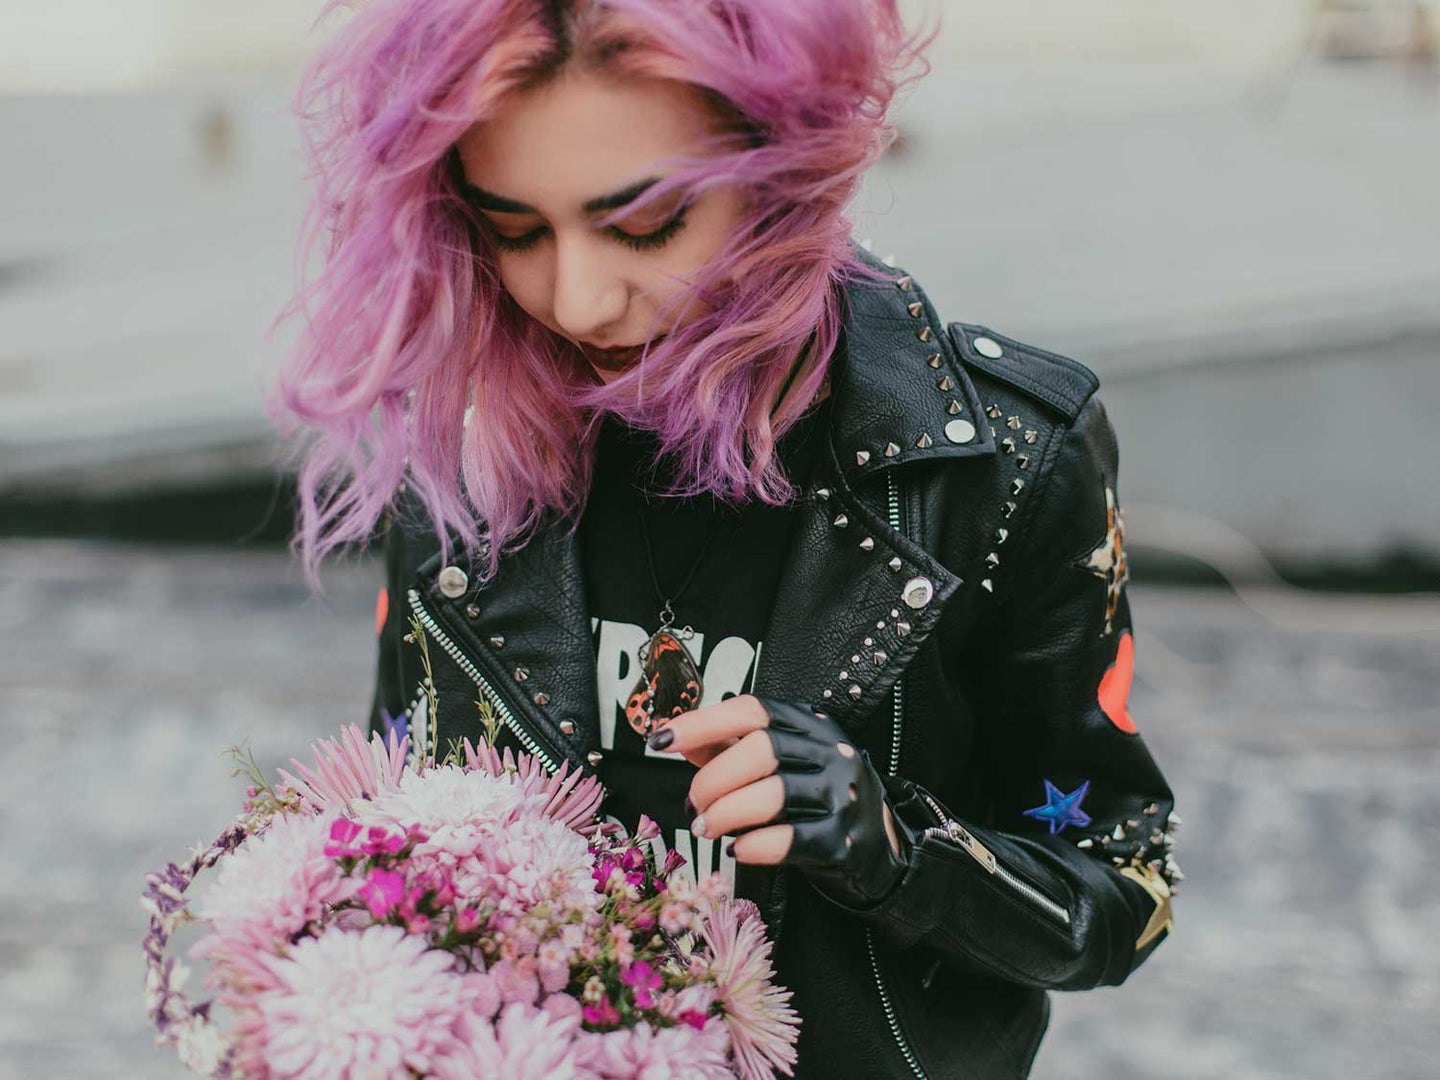 Woman with colorful purple hair and flowers.